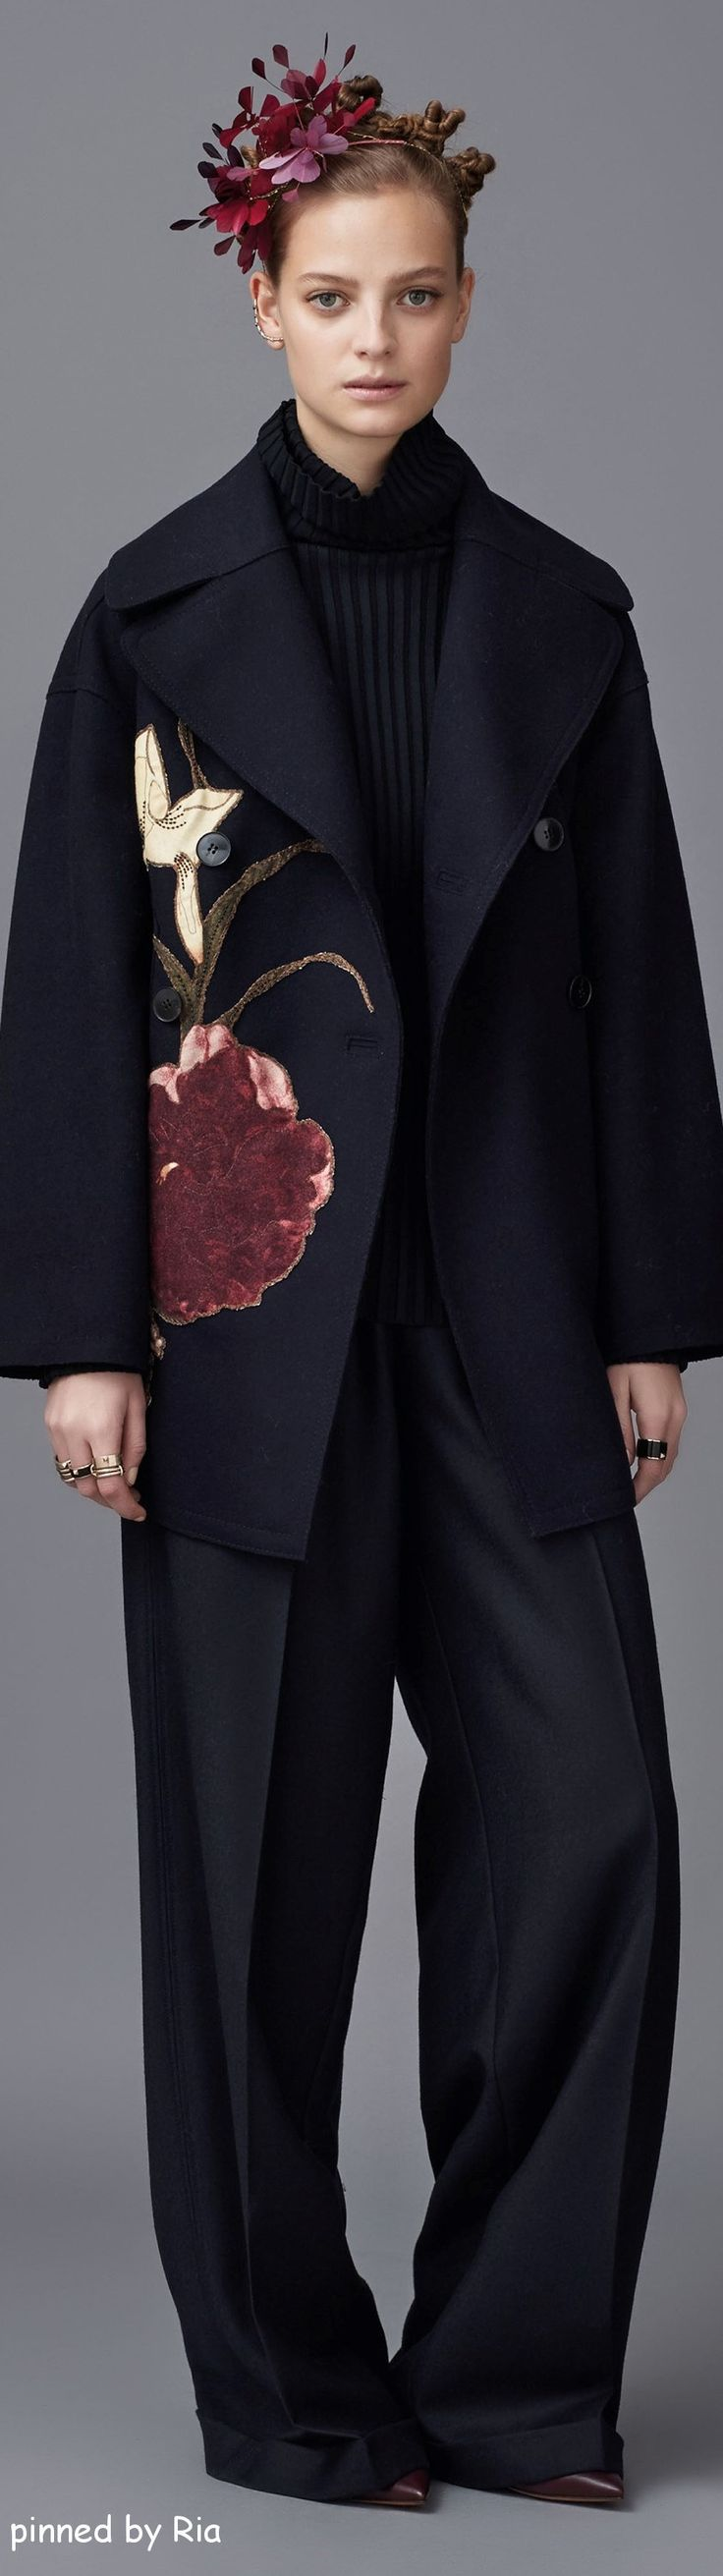 Valentino Pre Fall 2016 l Ria I really love this but I'm not sure I'd wear it often. Any thoughts?